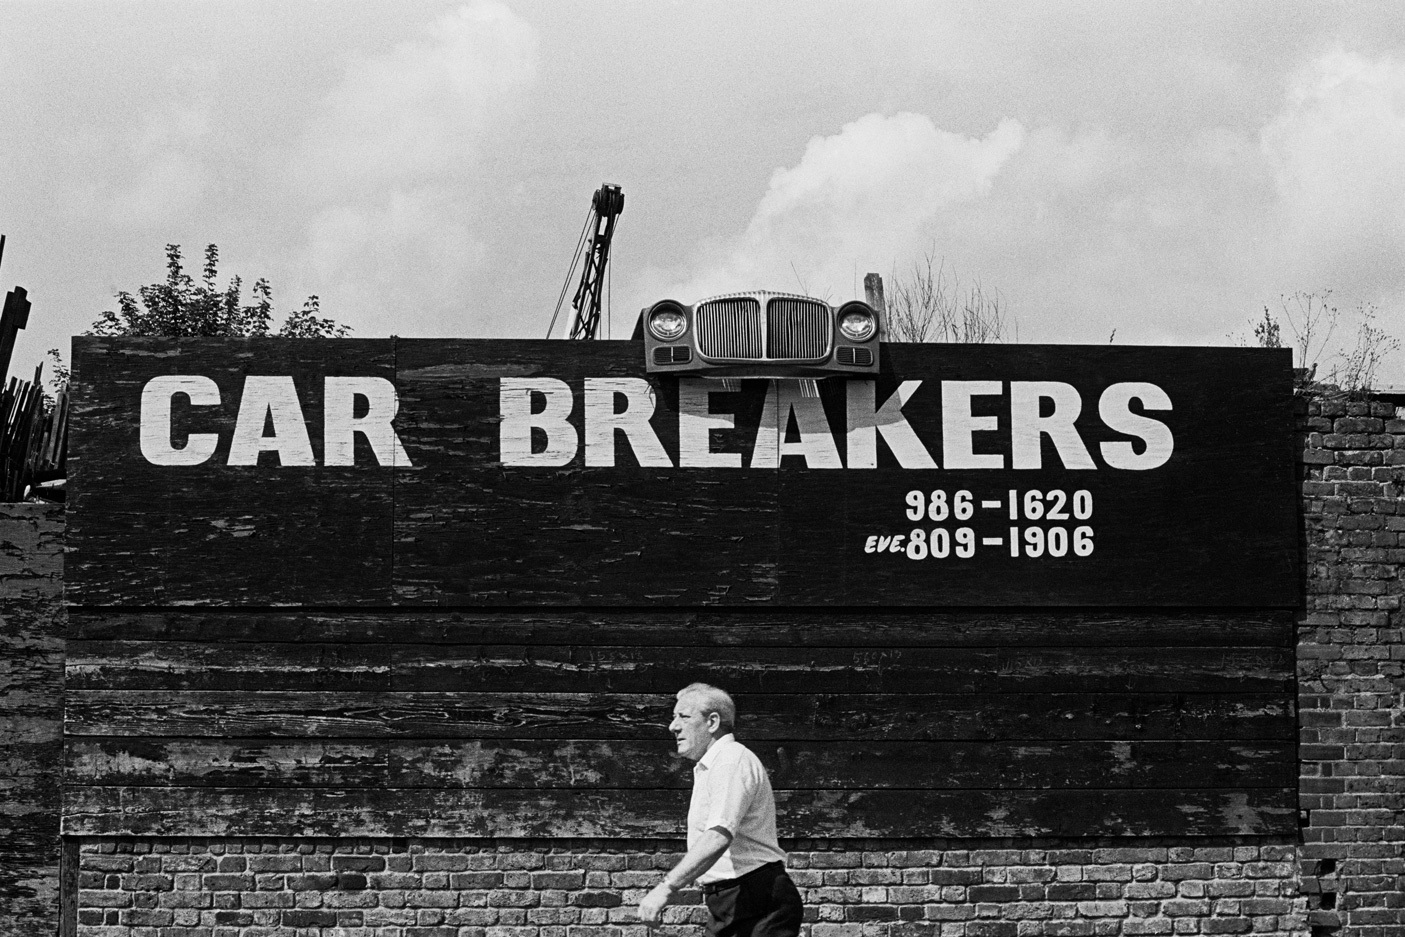 11 photos of old east London by Colin O'Brien